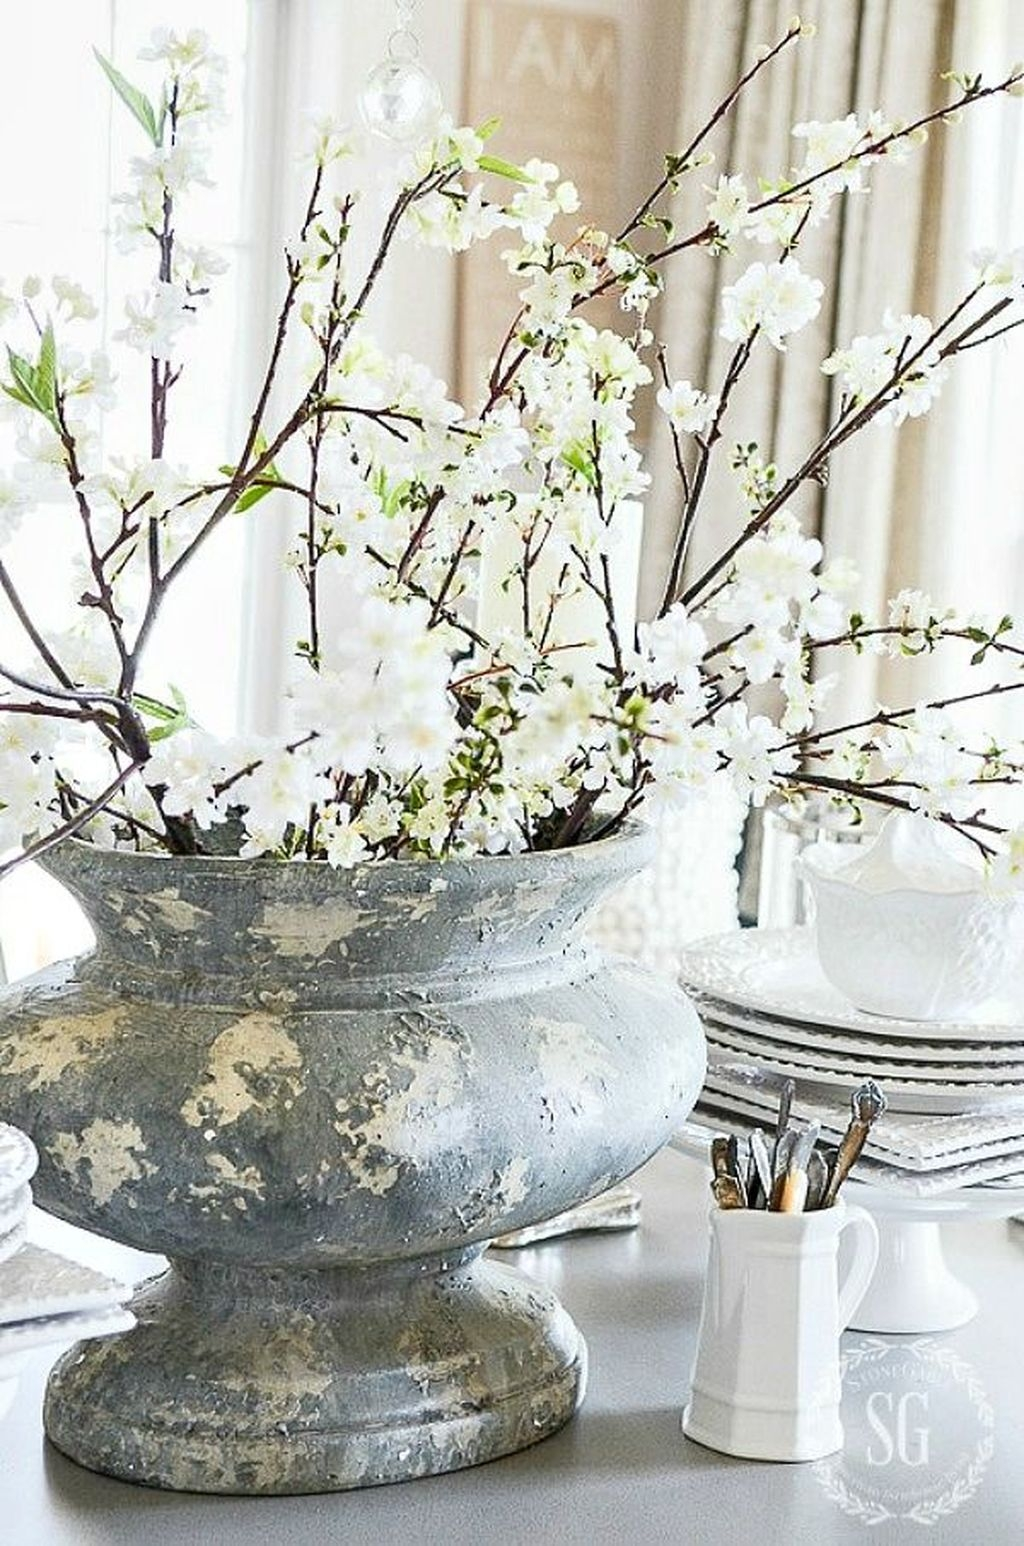 Affordable Arranging Things Ideas In Home For Perfect Order 37